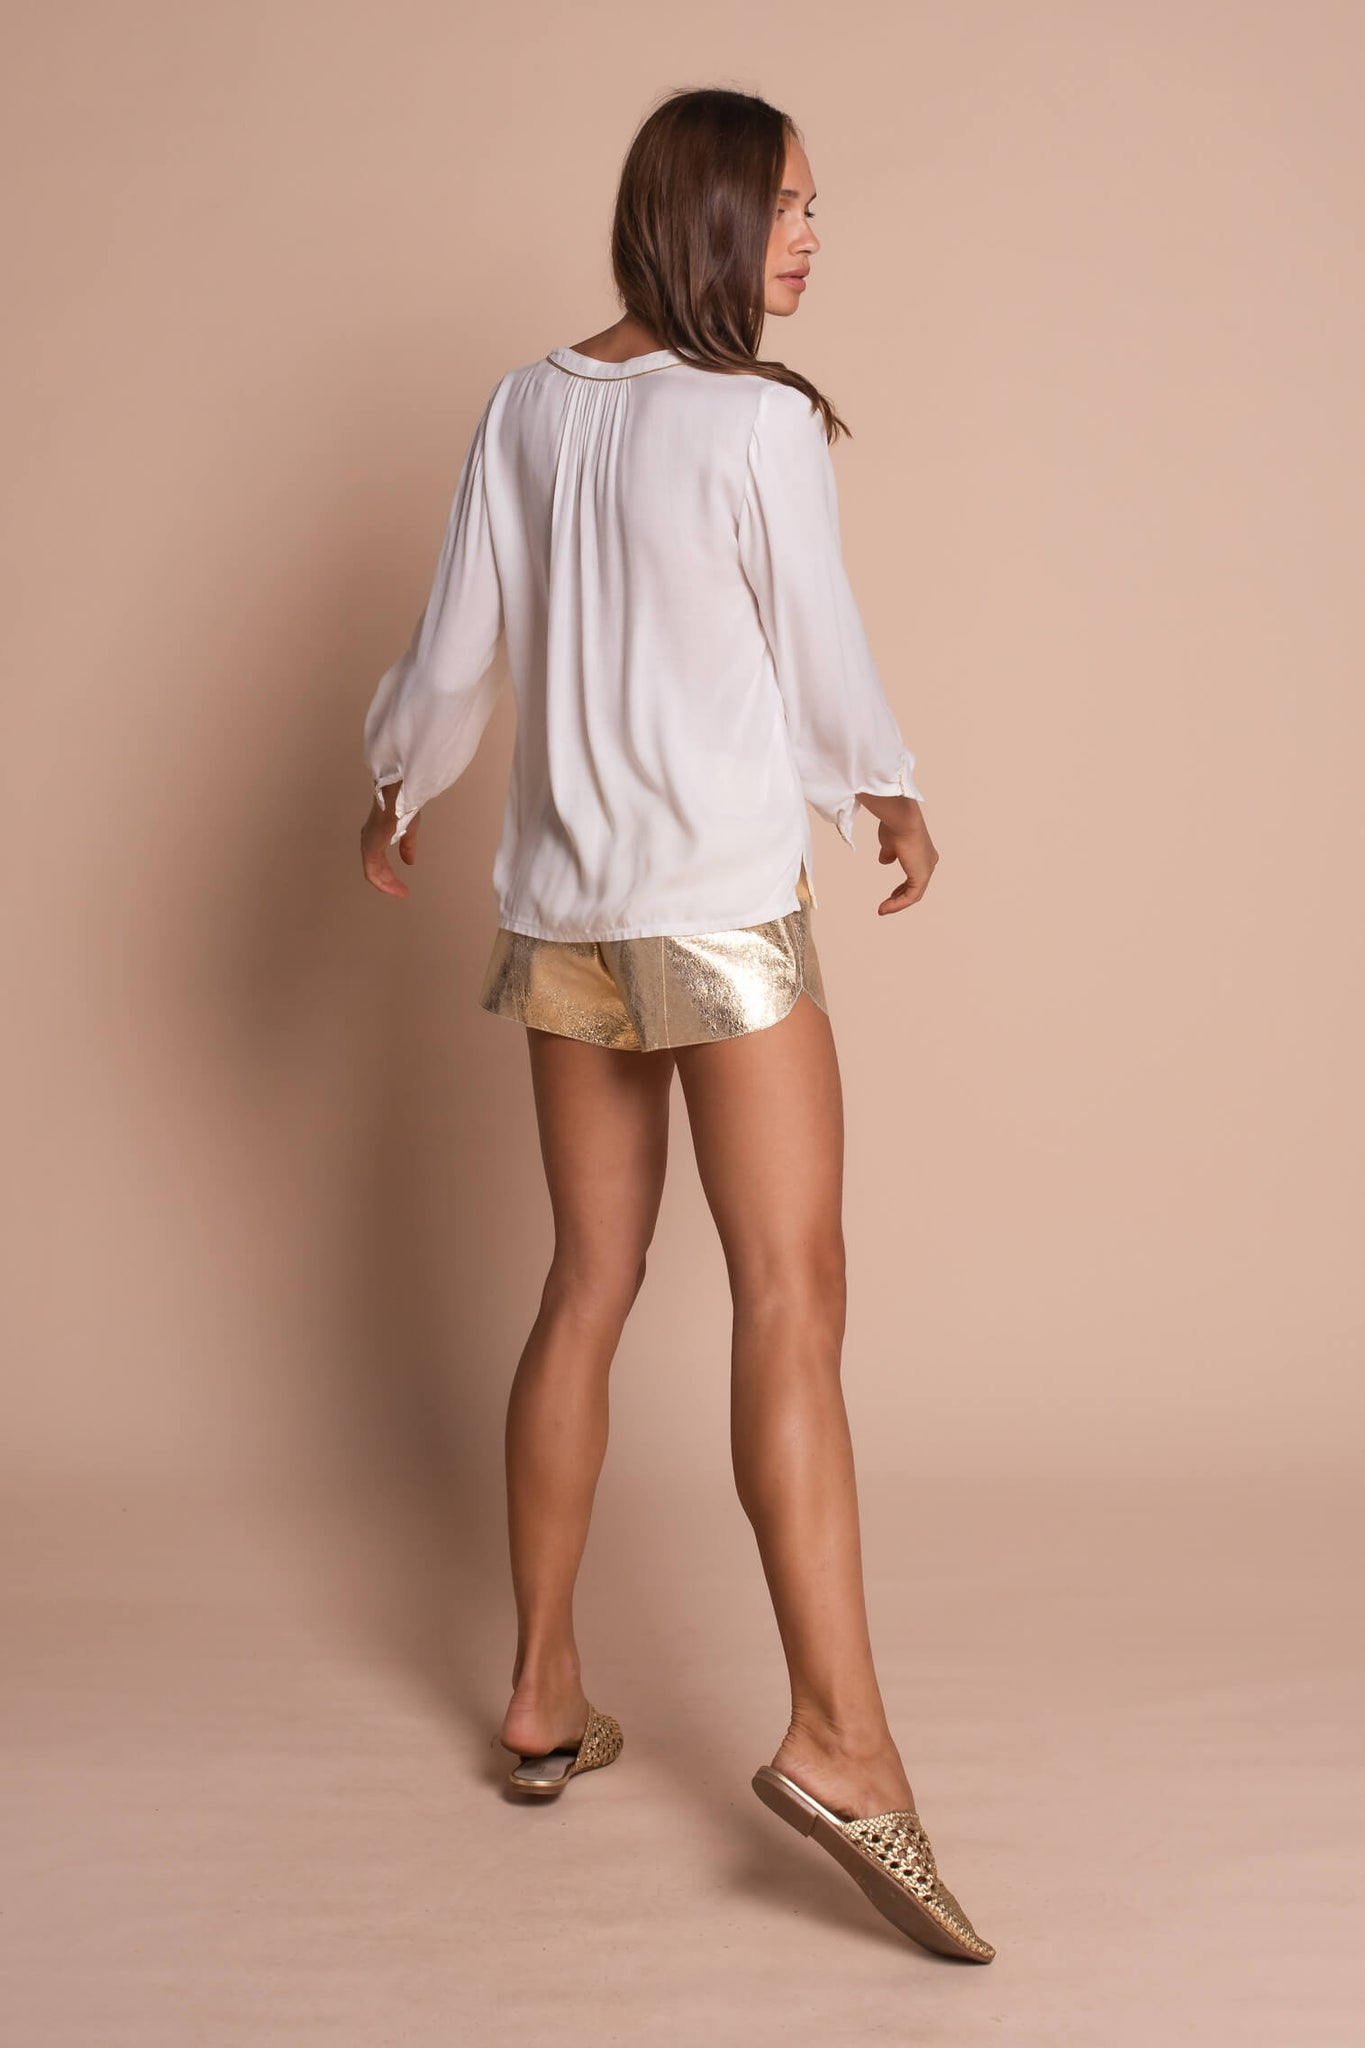 white heather shirt side